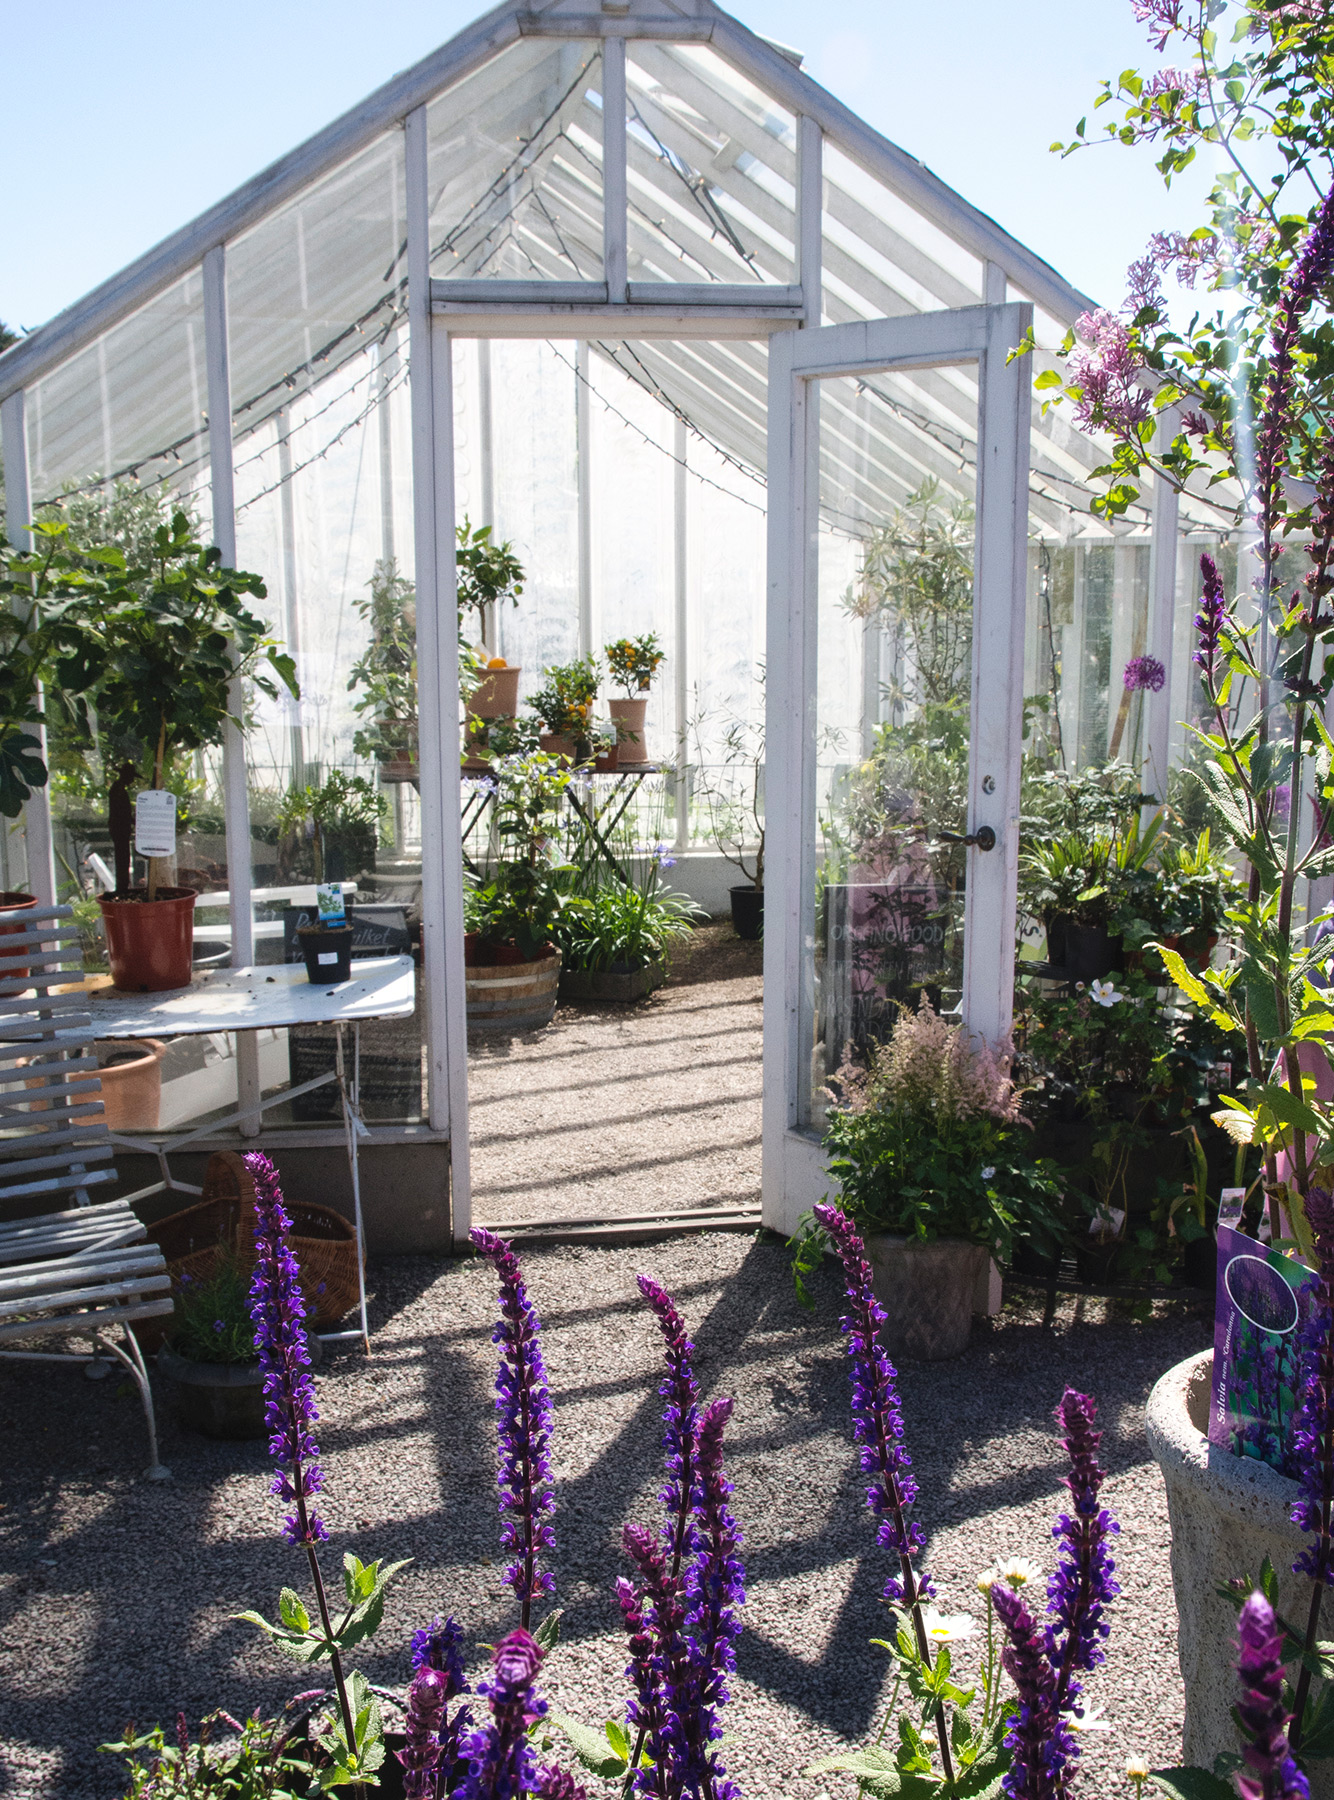 View into greenhouse